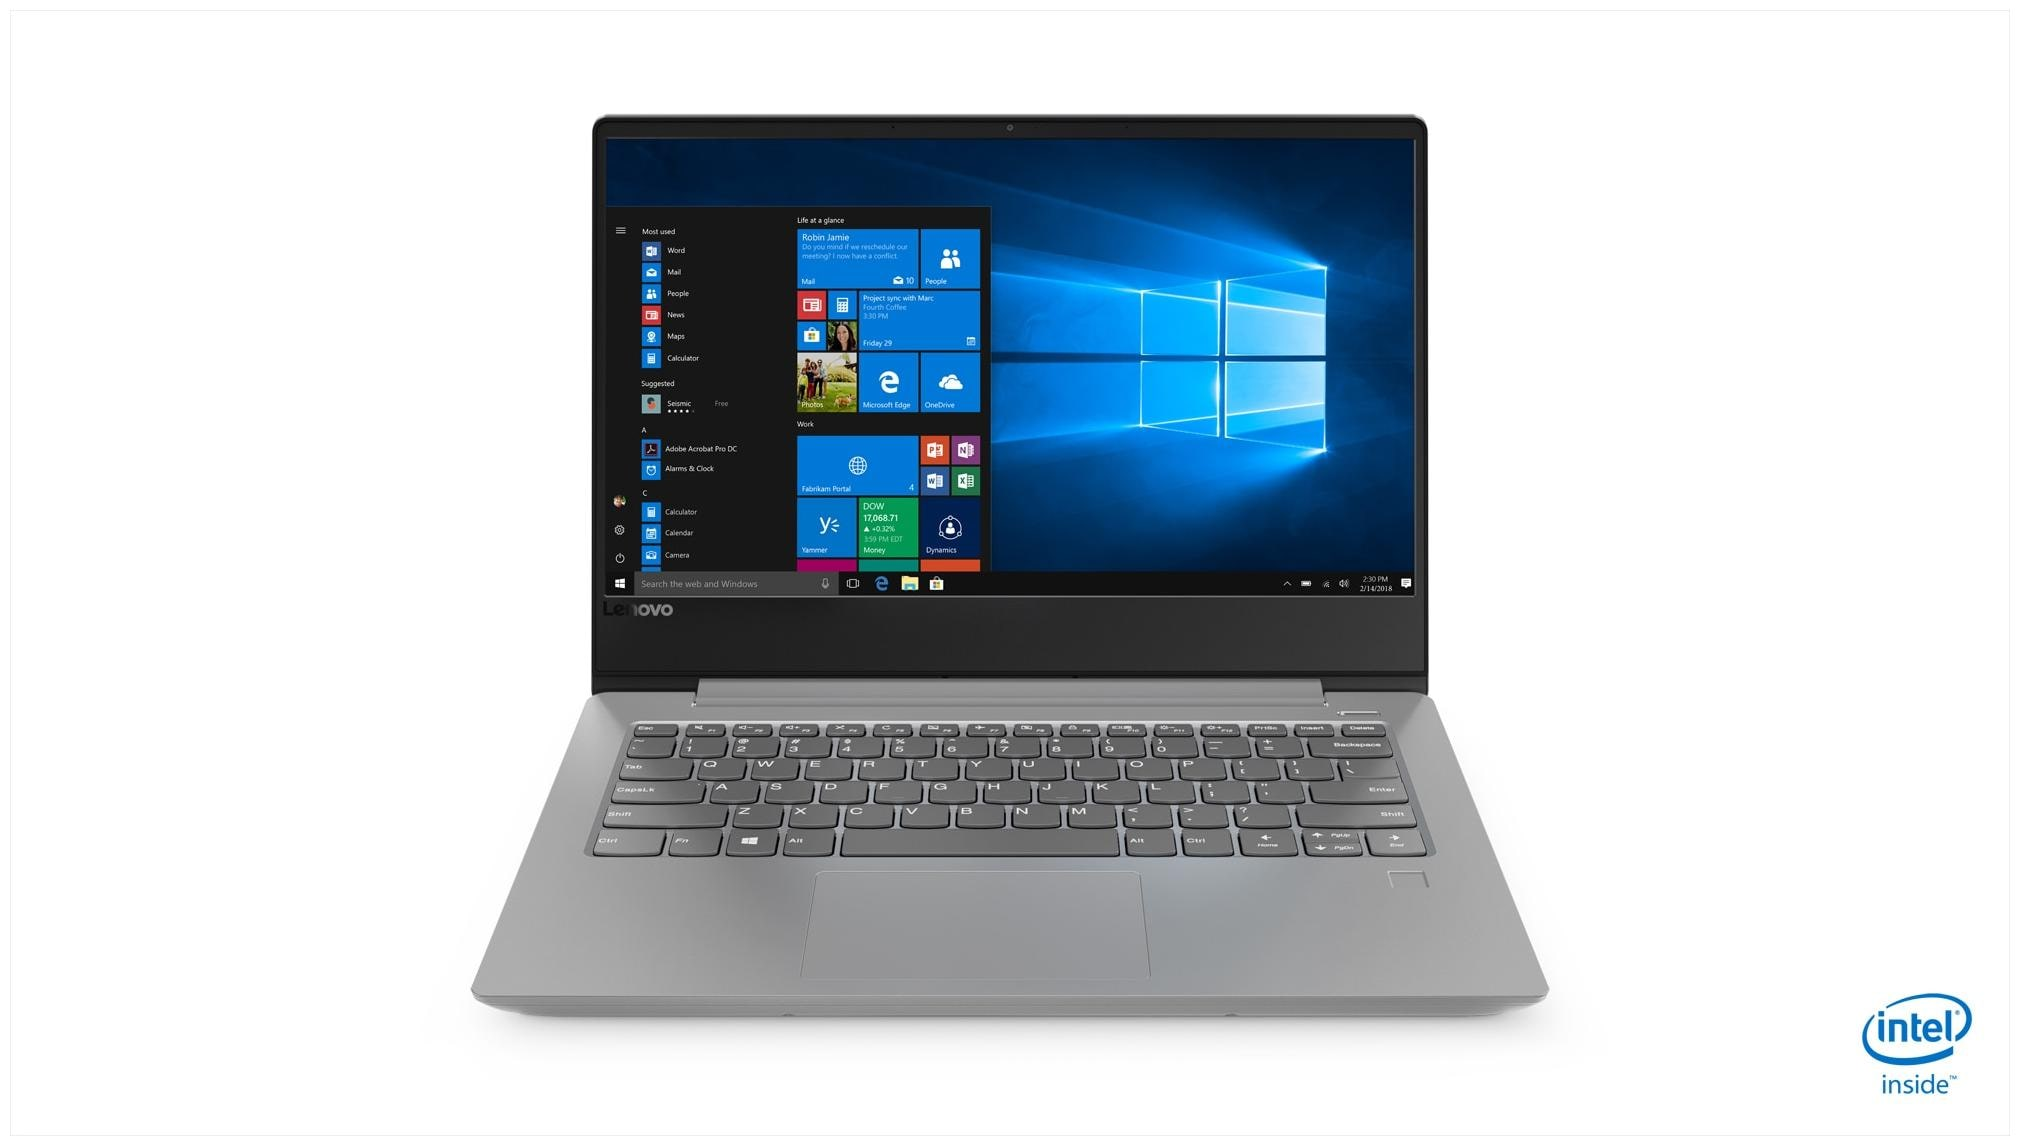 Lenovo Ideapad 330S (Core i3 - 8th Gen/4 GB RAM/1 TB HDD/35.56 cm (14 Inch) FHD/Windows 10) 81F400GLIN Thin and Light Laptop (Platinum Grey , 1.67 Kg)